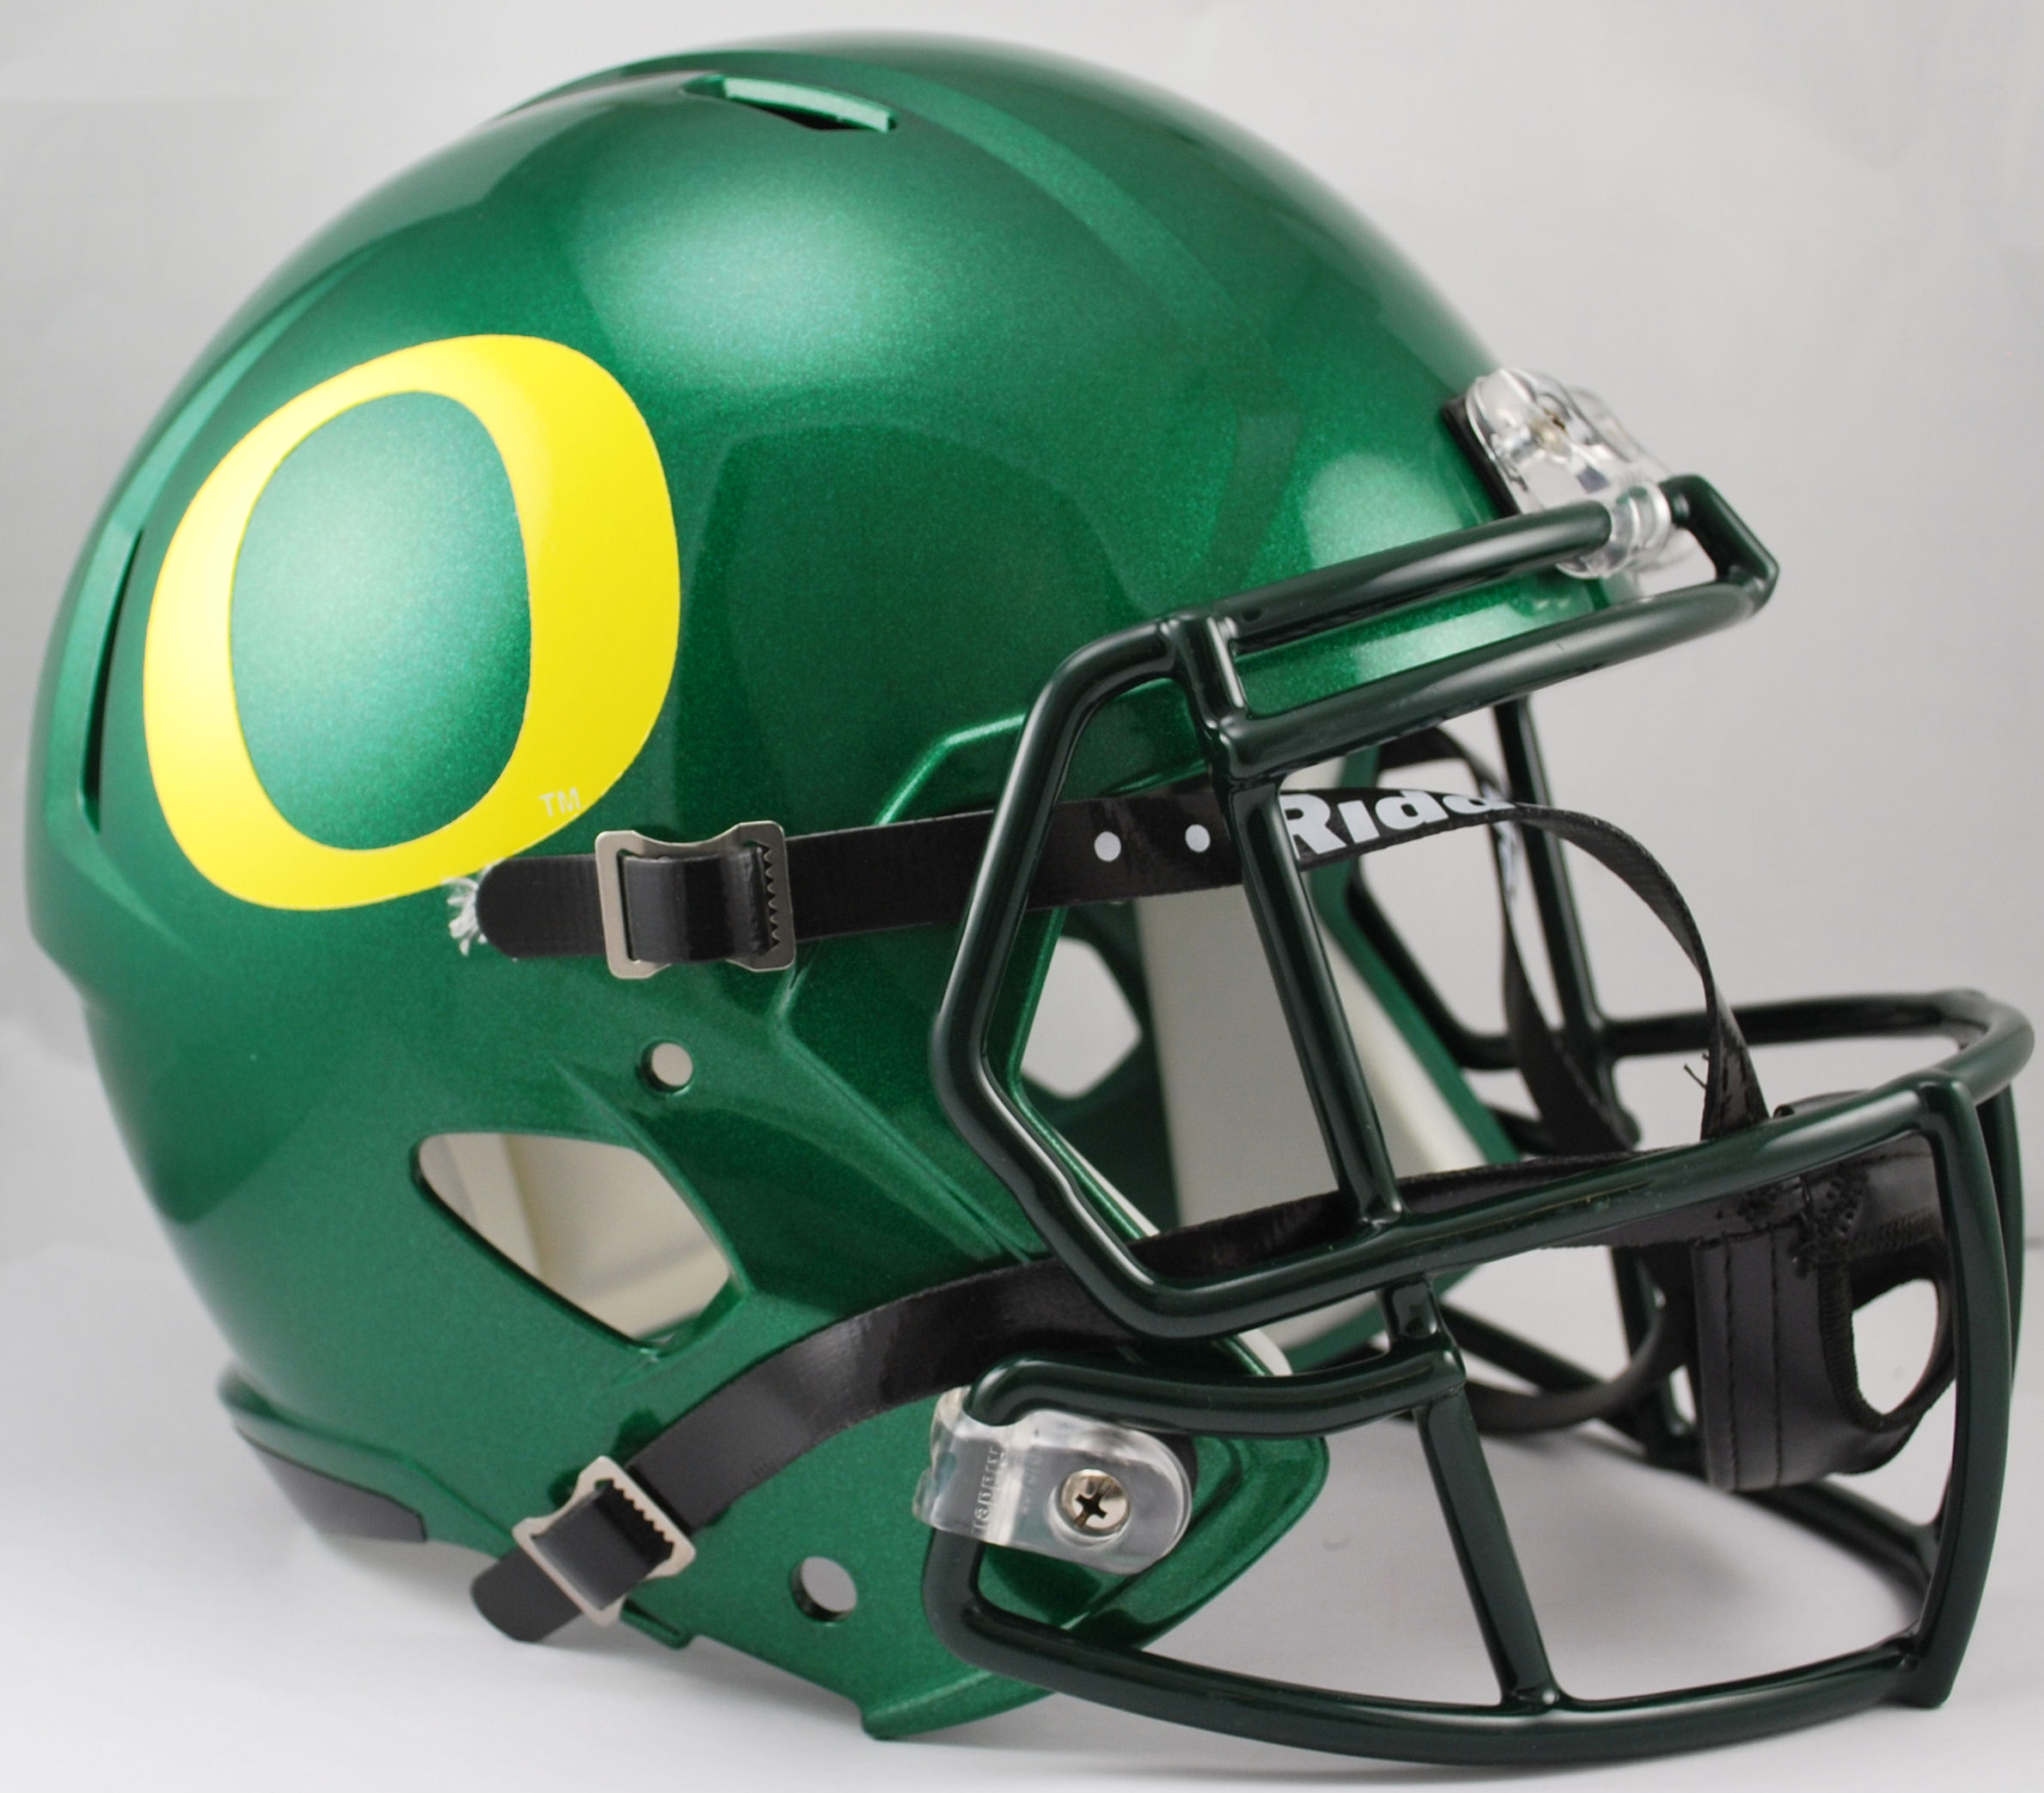 Oregon Ducks Speed Replica Football Helmet